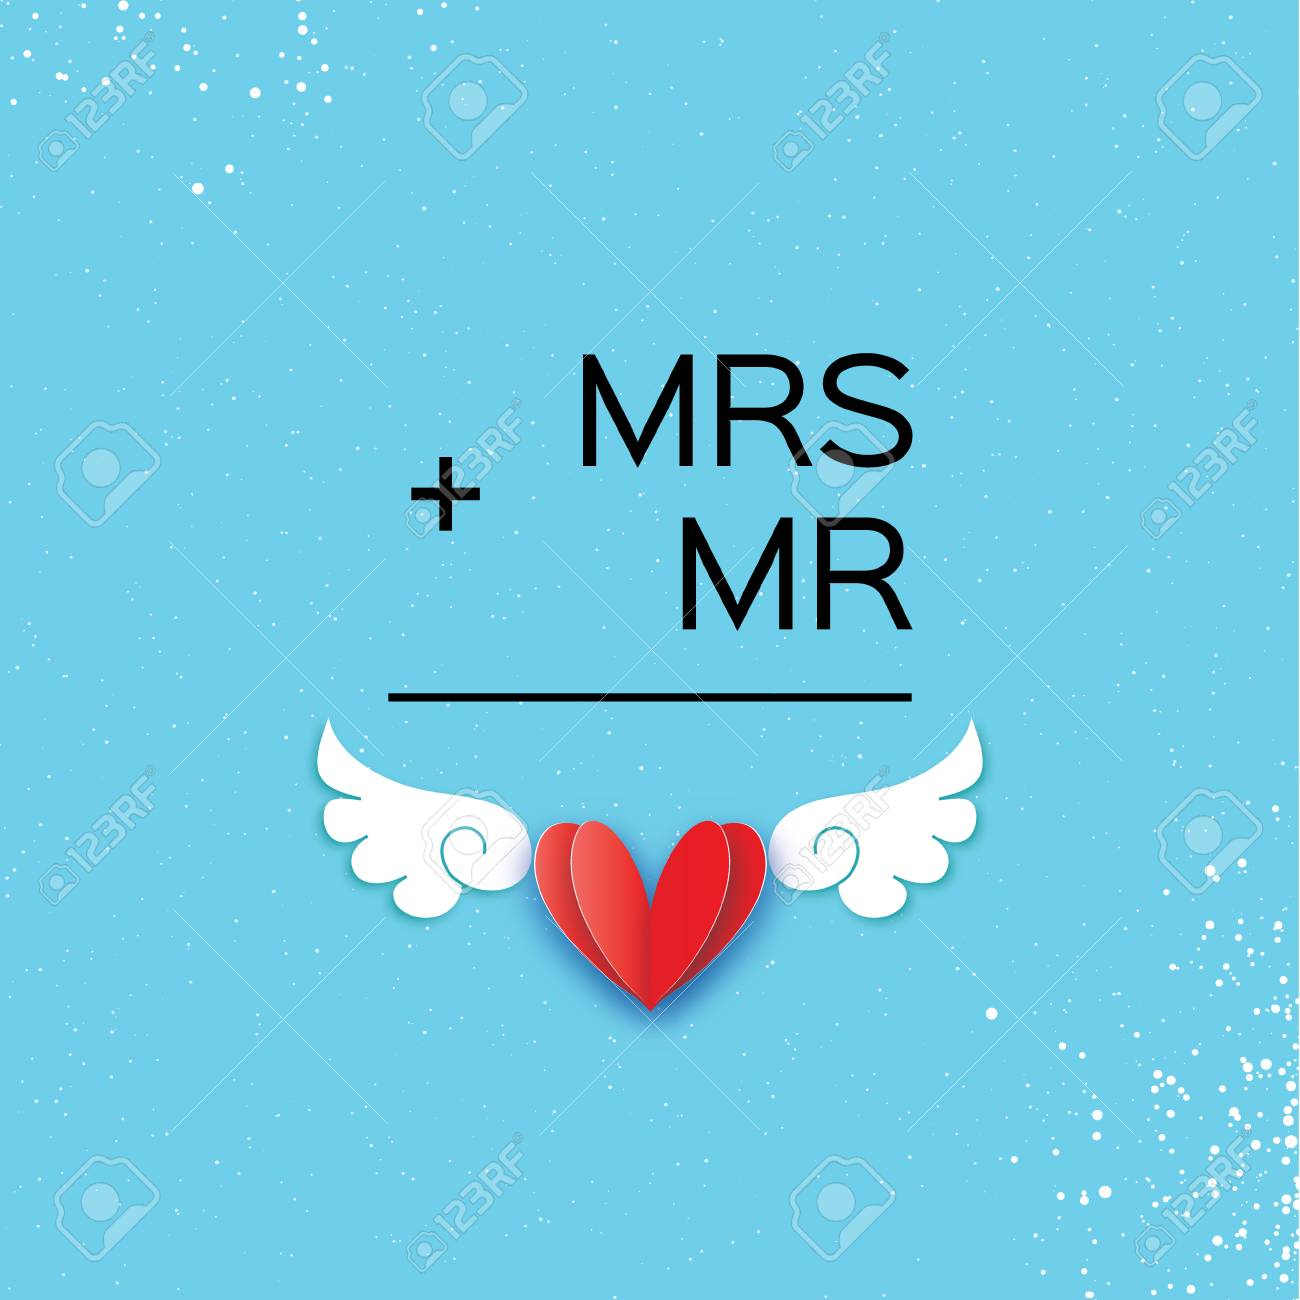 Mr And Mrs Words Mister Plus Missis Equal Love On Sky Blue In Paper Cut